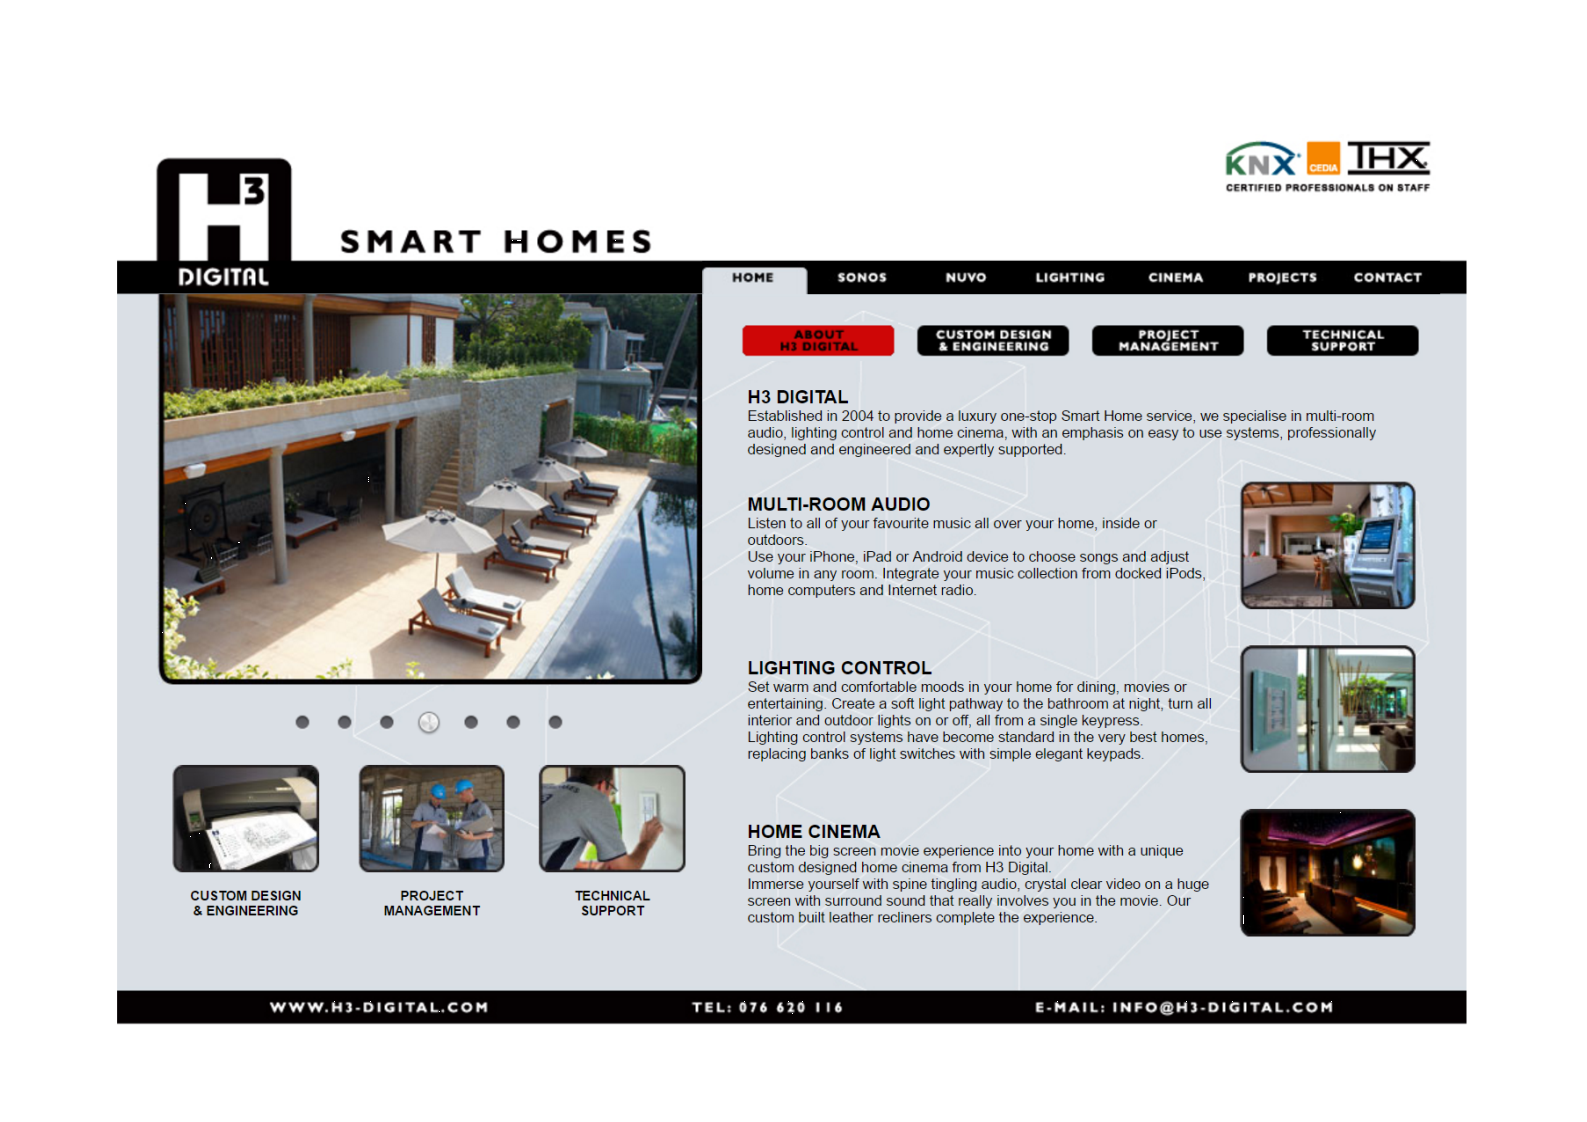 2012 H3 Digital Home page